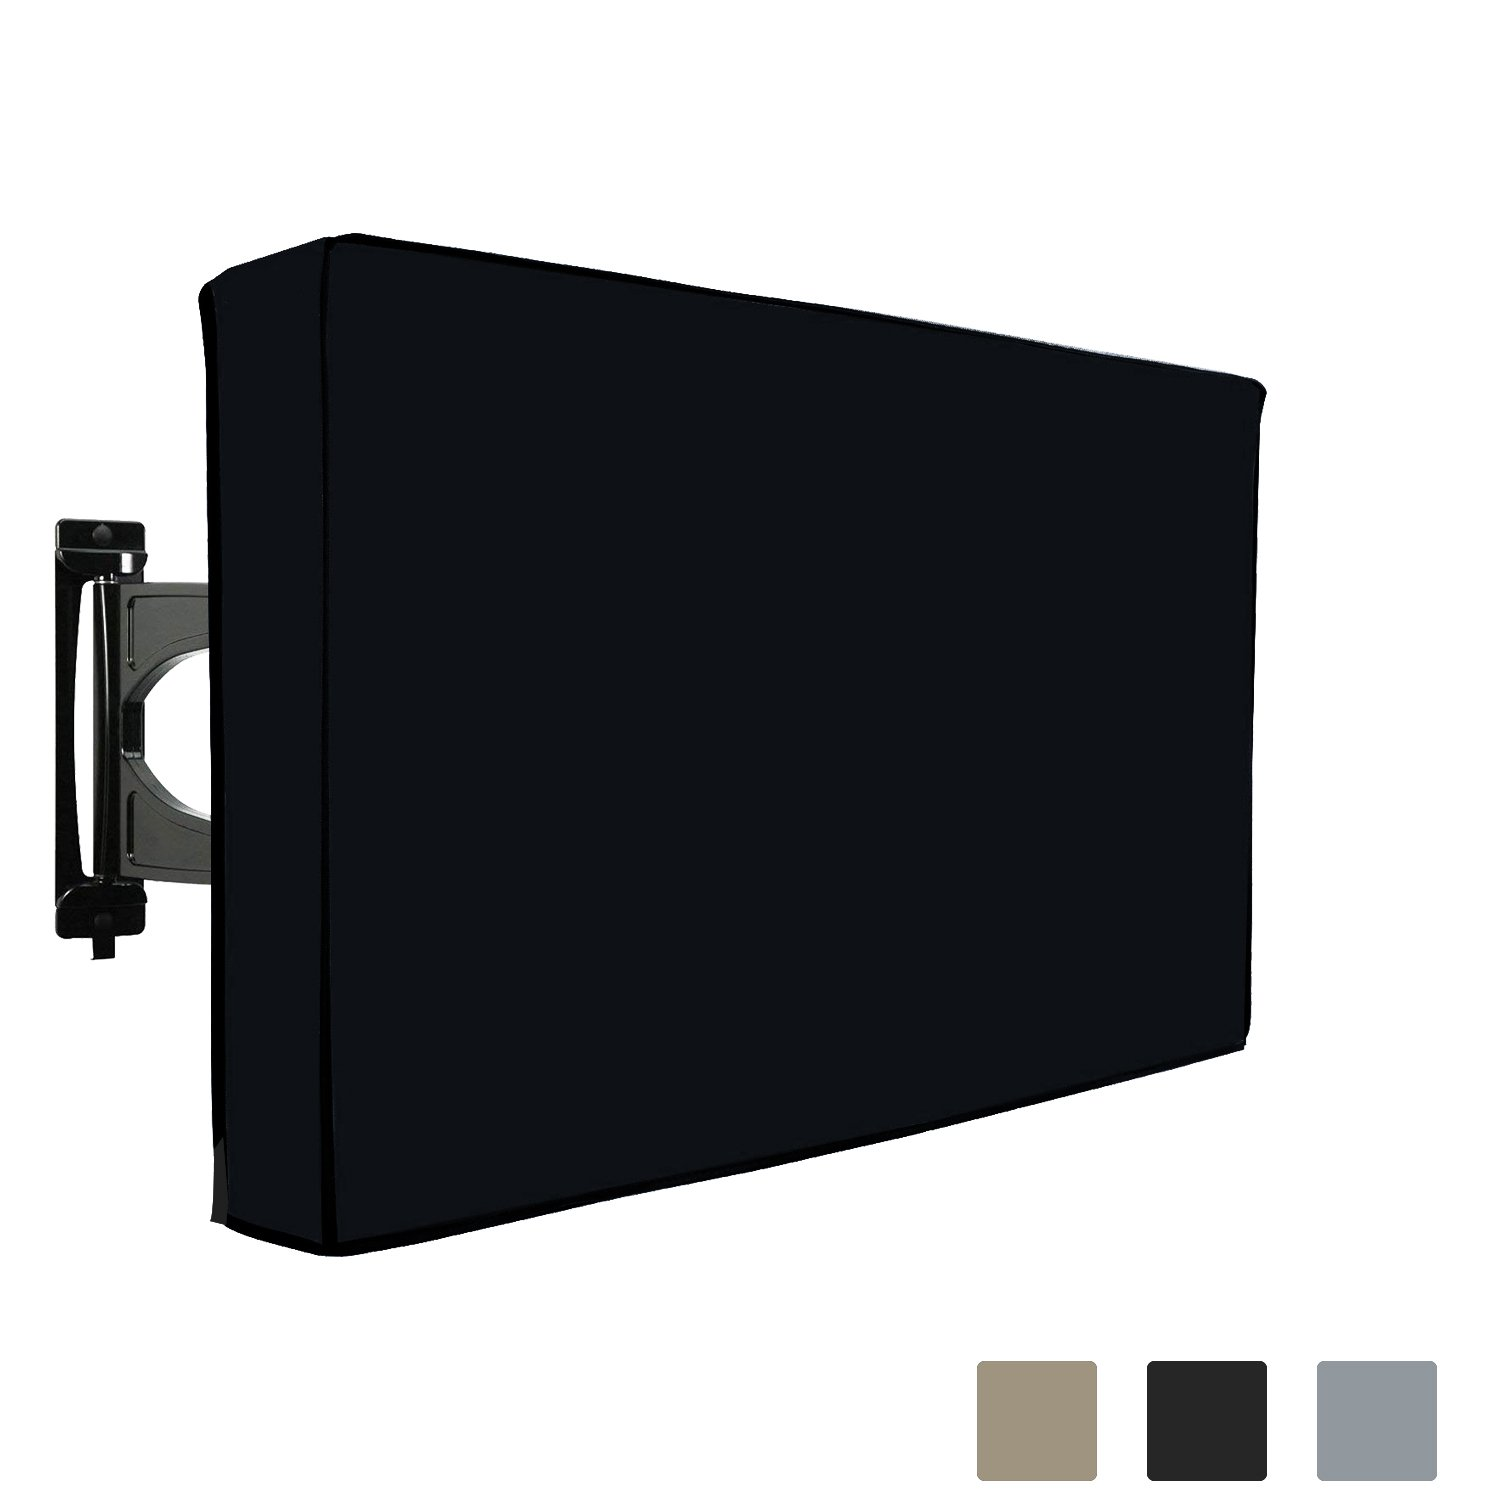 COVERS & ALL Outdoor TV Cover Weatherproof for LED LCD Plasma TV. Built-in Bottom Protection Flap, Remote Controller Storage Pocket, Fits Wall & Standard Mounts, 1000 D PVC Fabric (50'' - 52'', Black) by COVERS & ALL